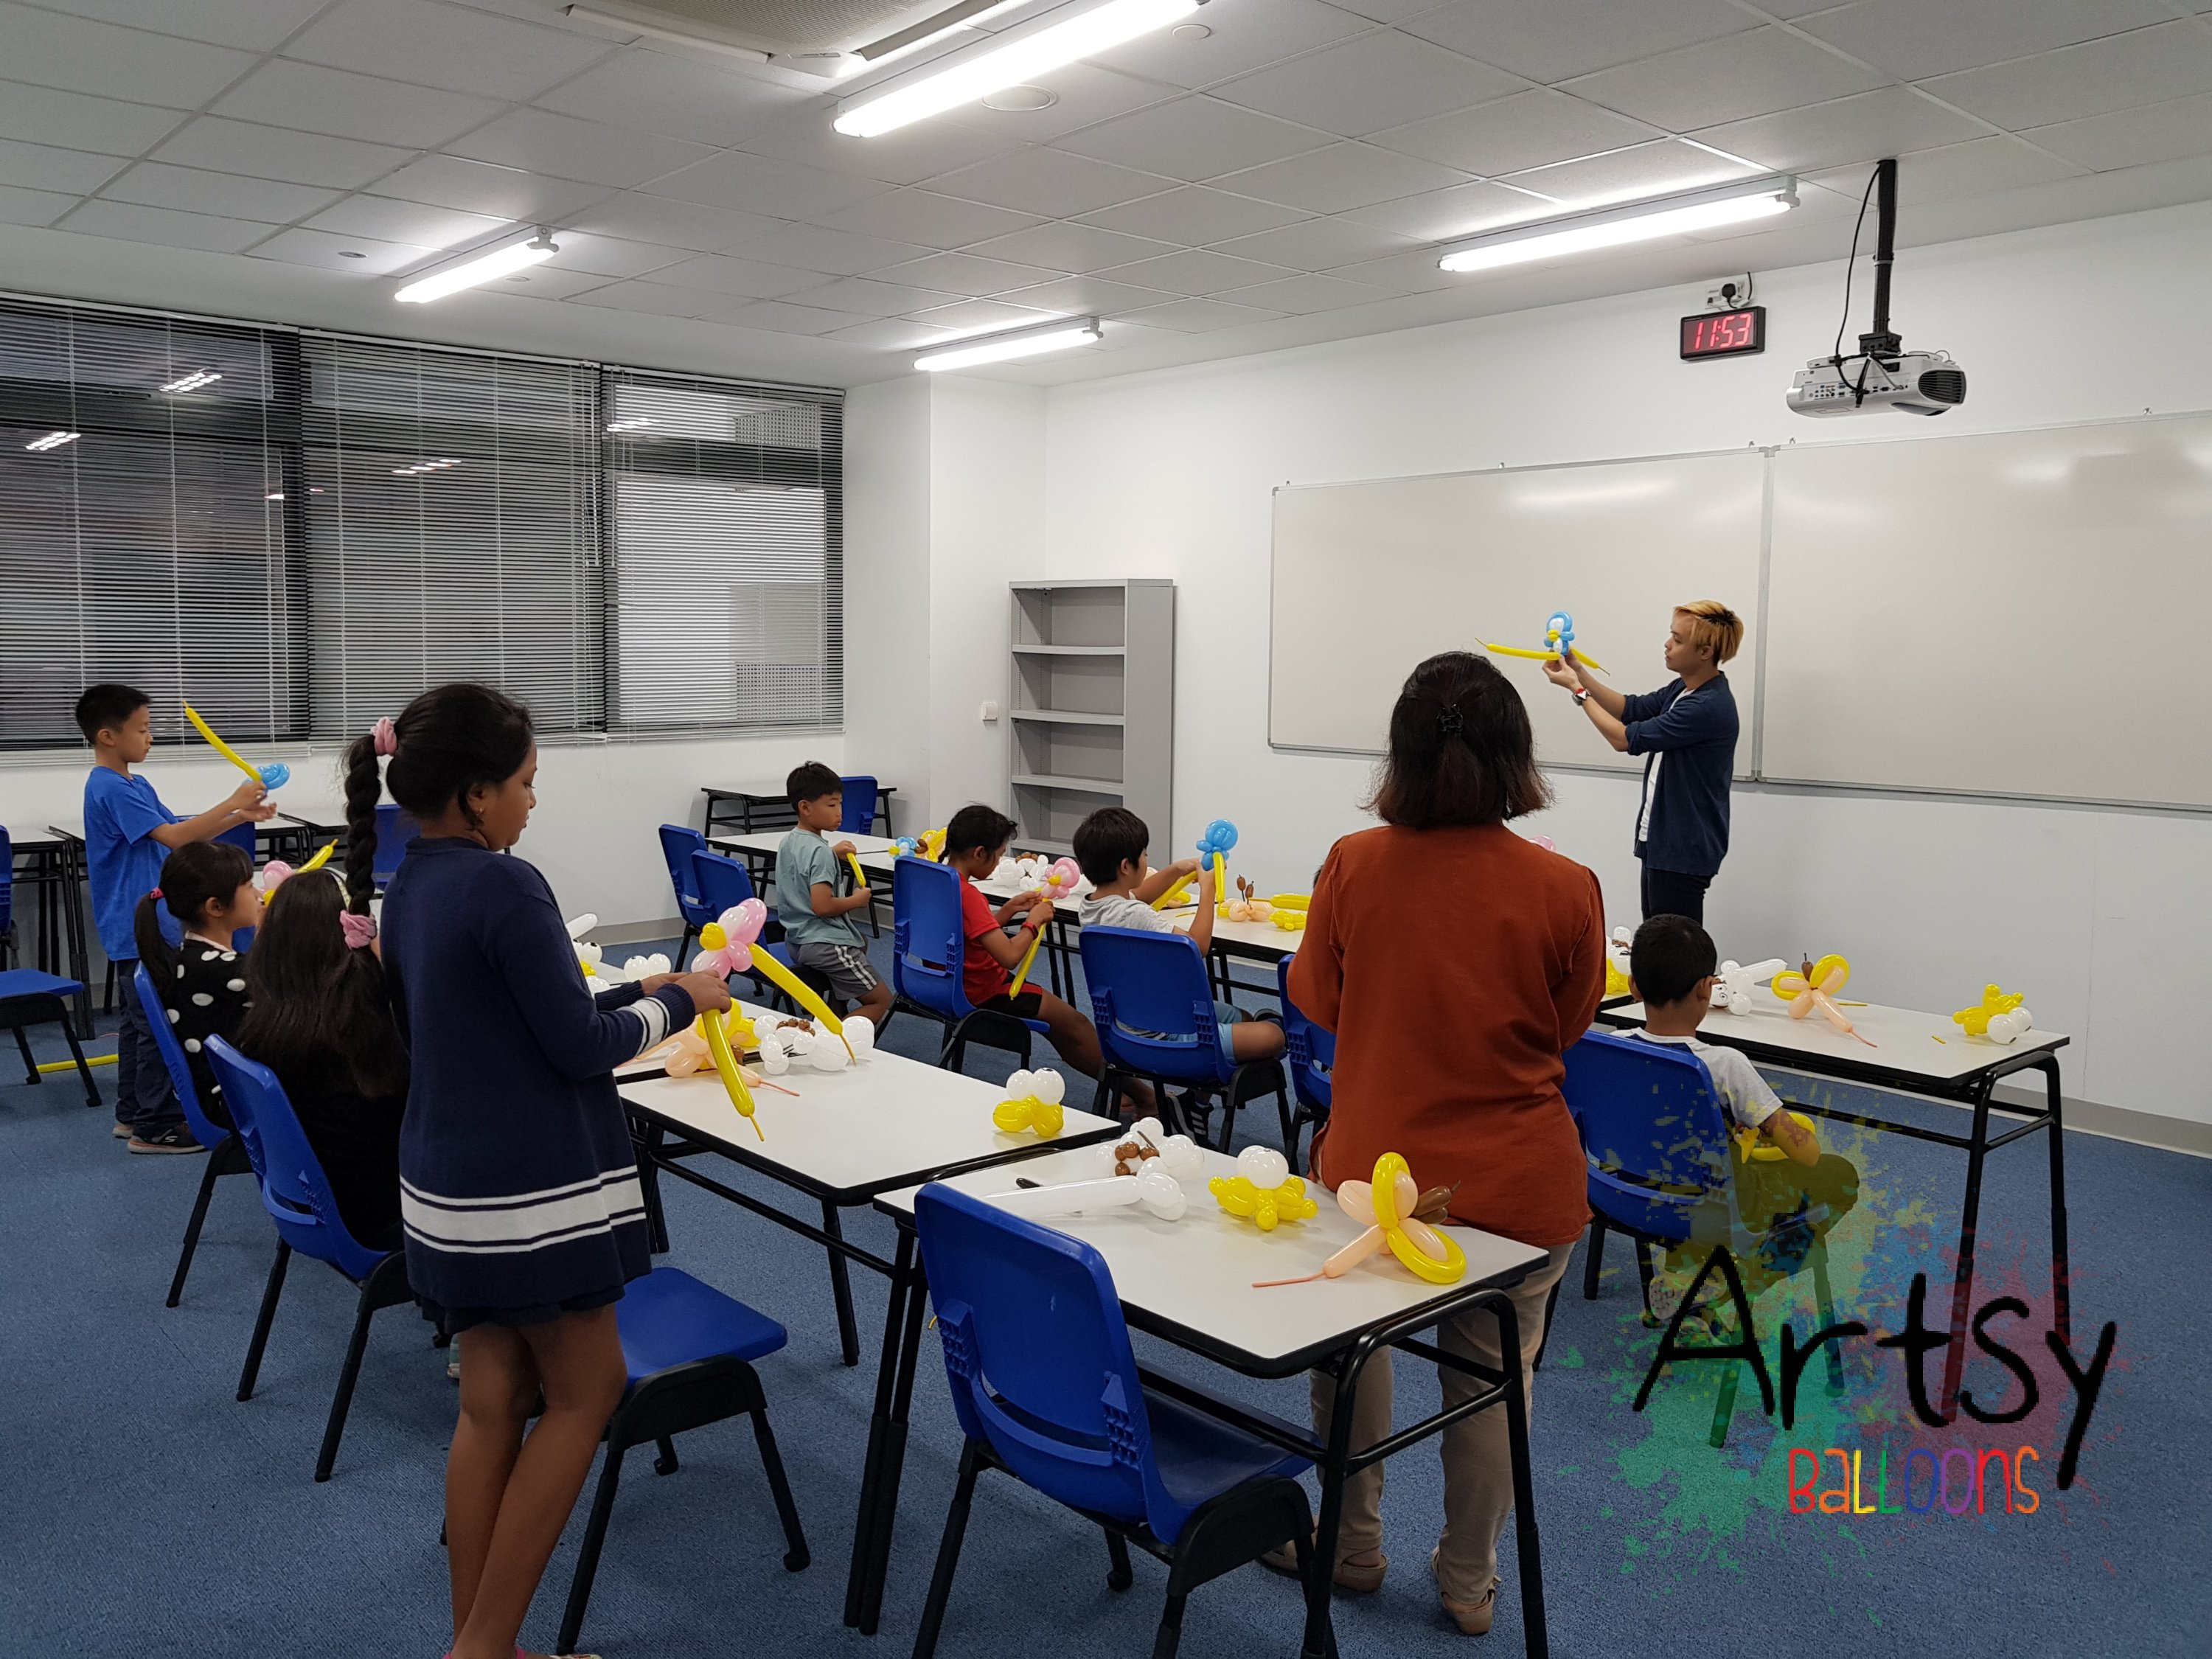 , Balloon Workshop for Overseas Family School!, Singapore Balloon Decoration Services - Balloon Workshop and Balloon Sculpting